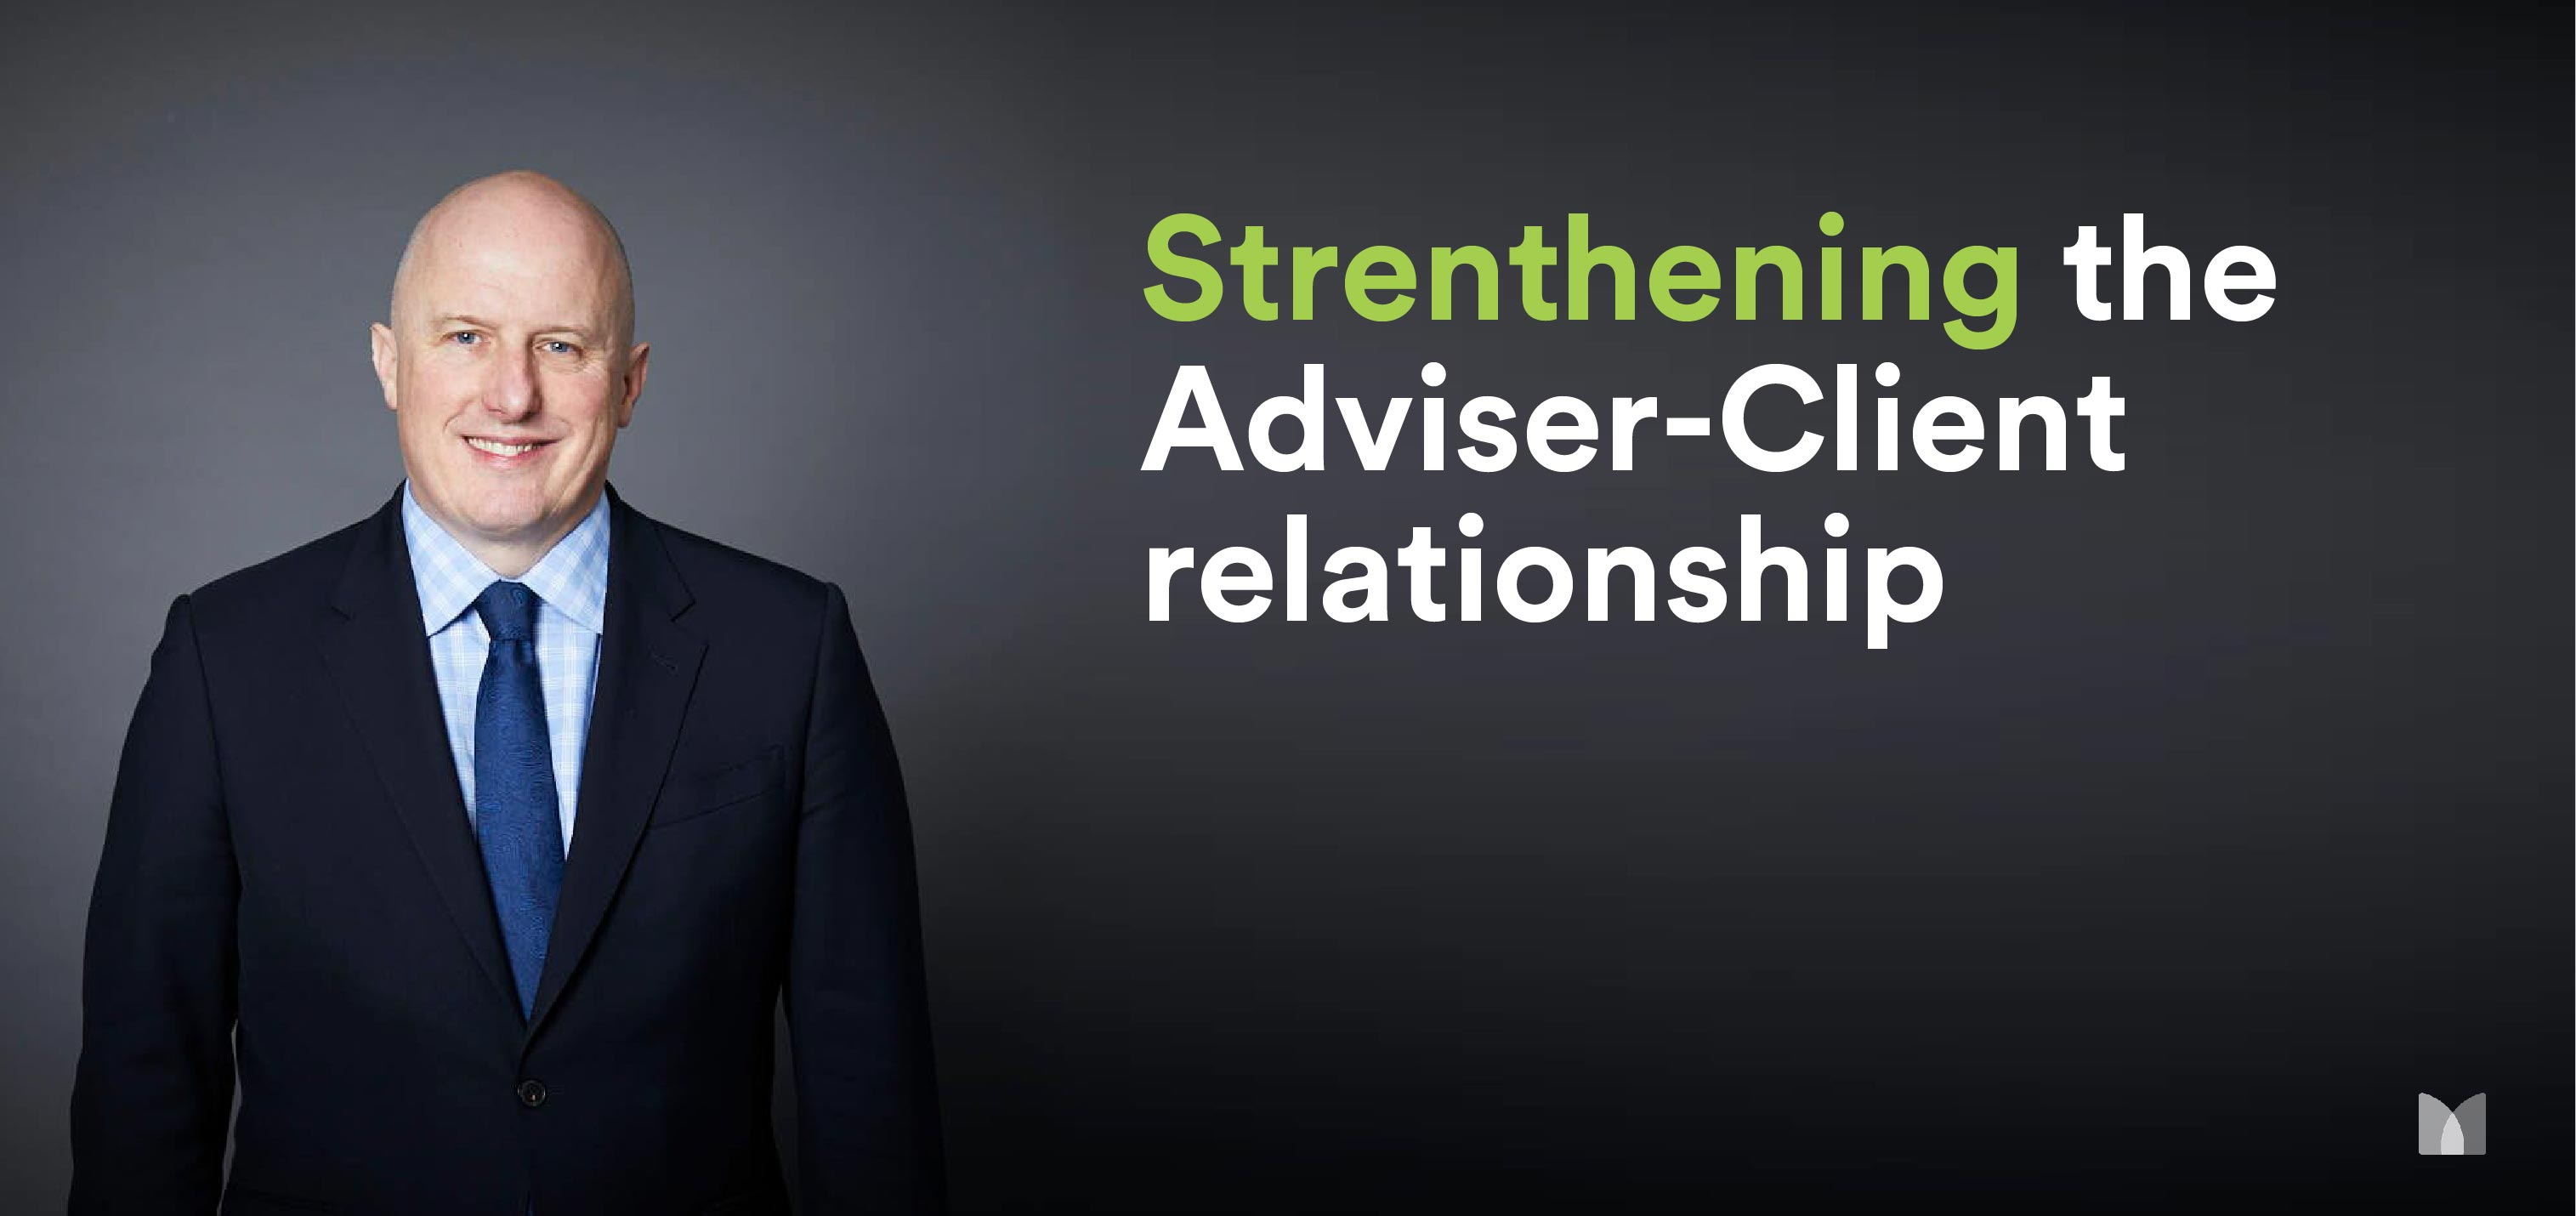 Why advisers need to strengthen connections with their clients